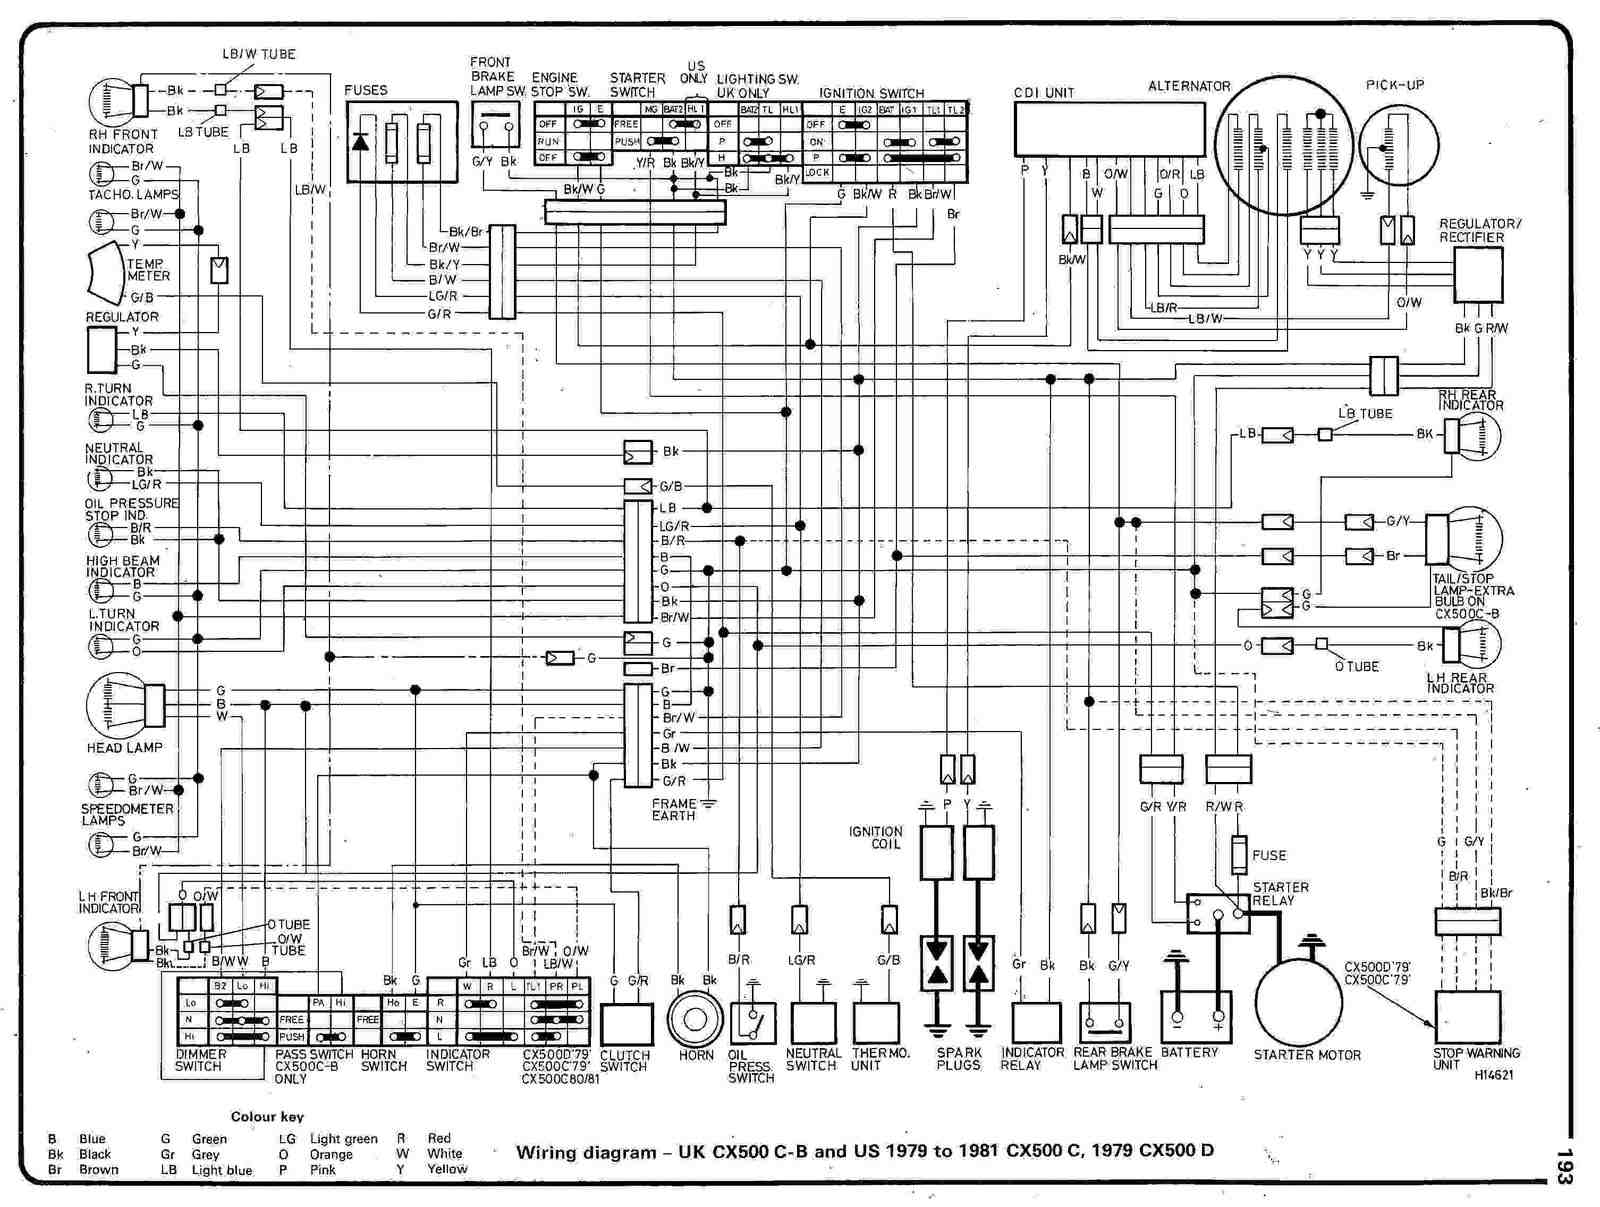 small resolution of 1979 mustang wiring diagram wiring diagrams img 1999 mustang wiring diagram 1979 mustang wiring diagram